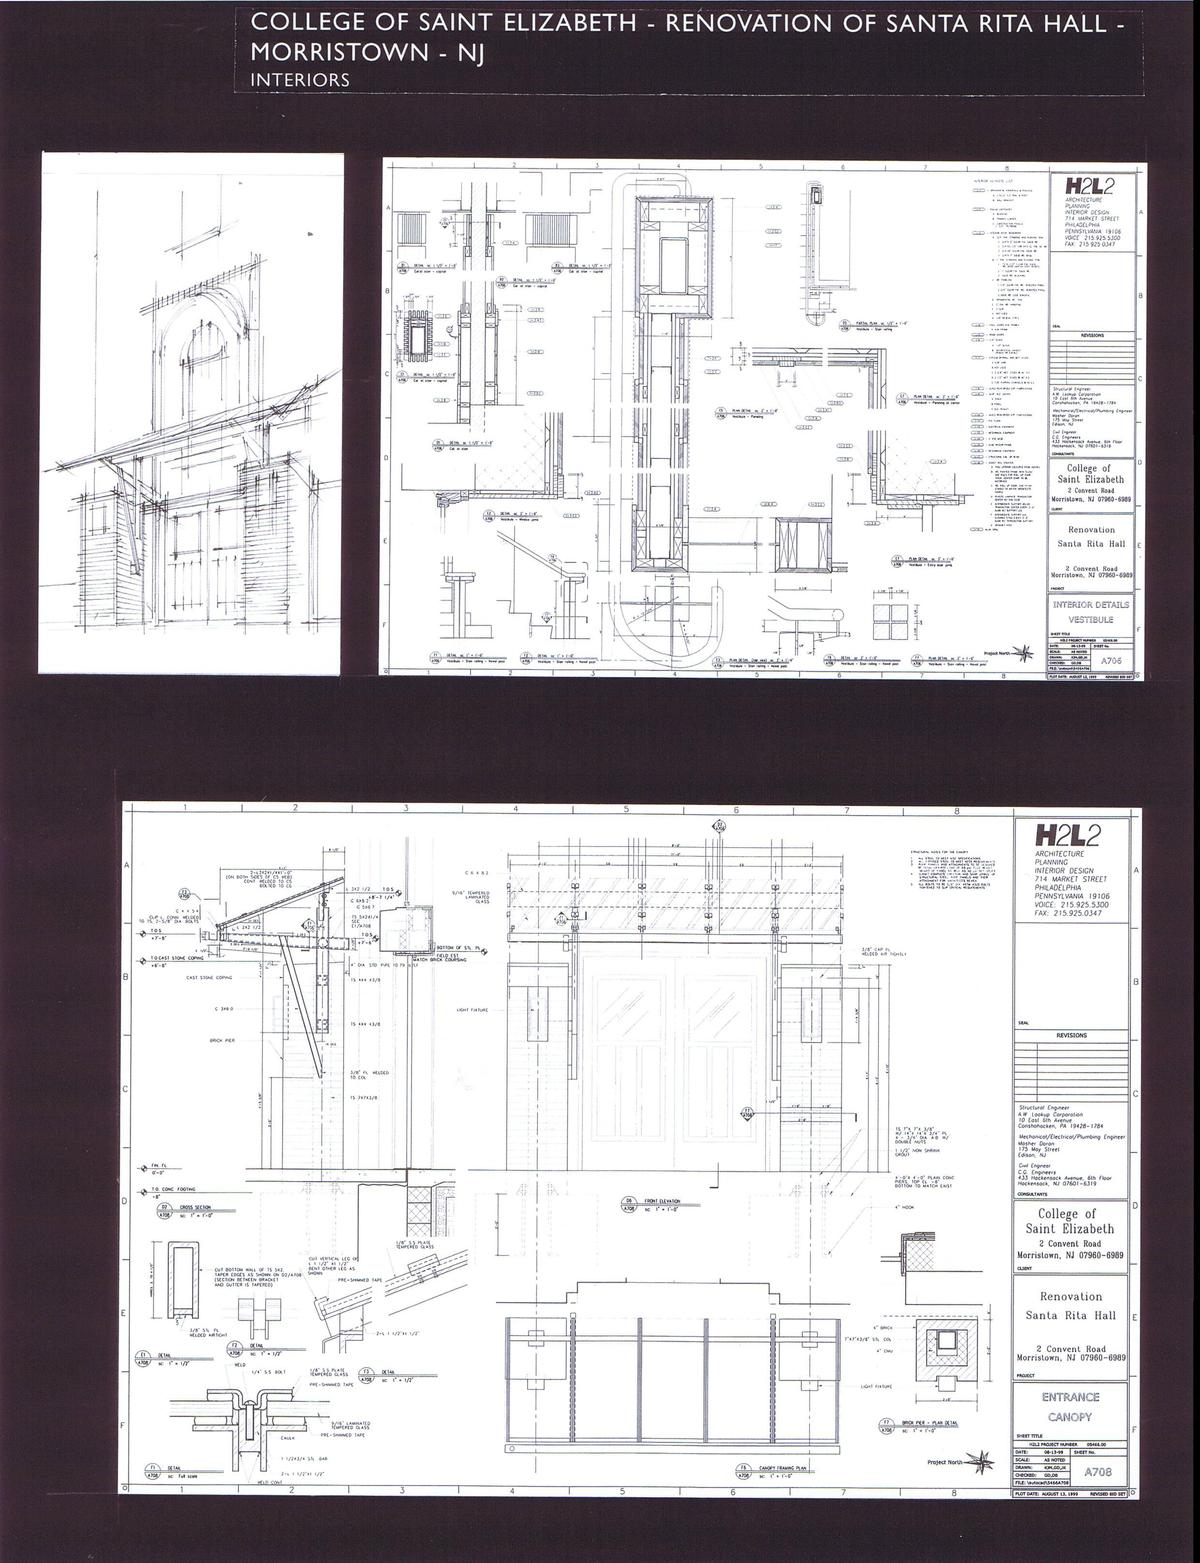 Railing Details, Entry Canopy - Plan, Elevations and Details